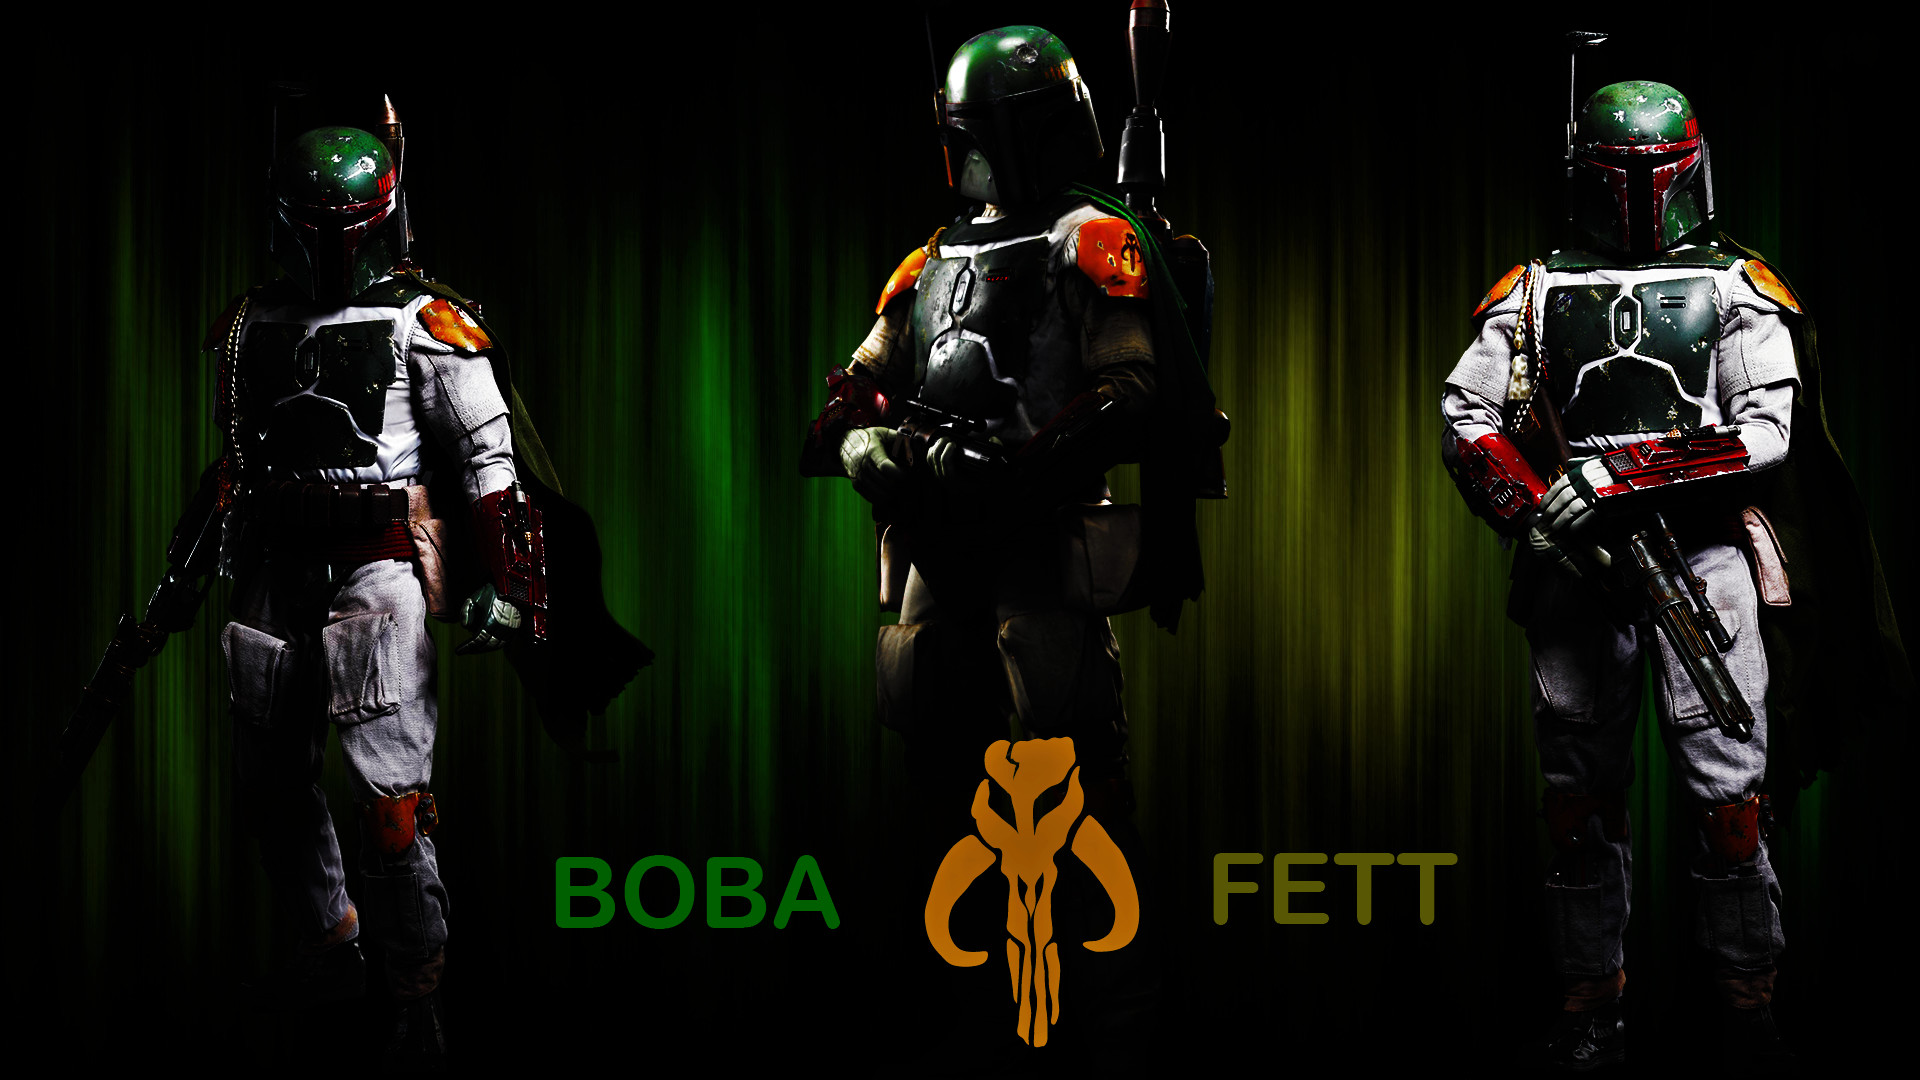 … Star Wars-Boba Fett Wallpaper by TheRenegade01